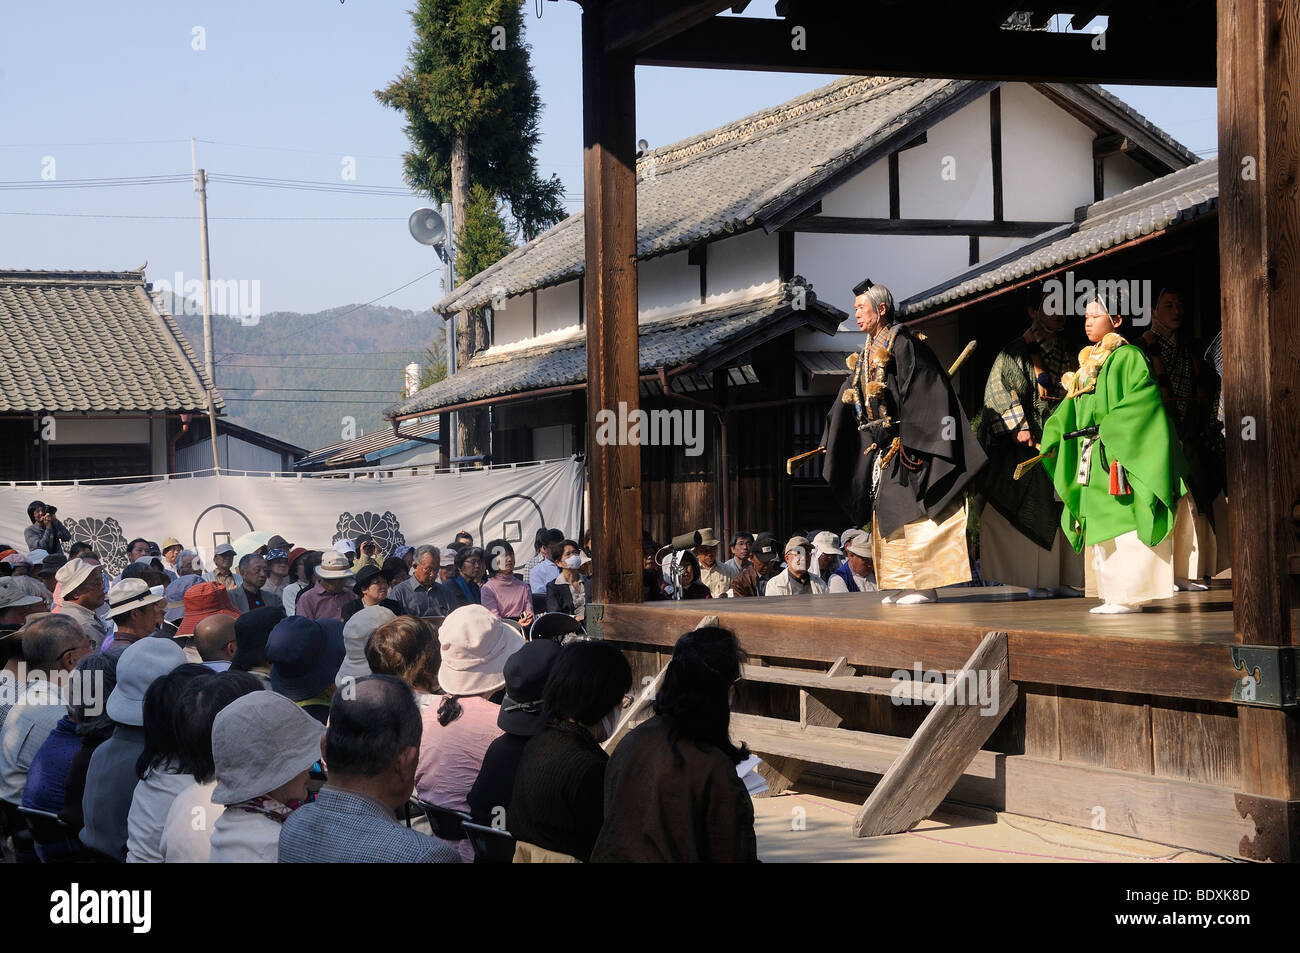 No play, famous traditional dance theater in a Shinto shrine in Sasayama, Japan, Asia Stock Photo